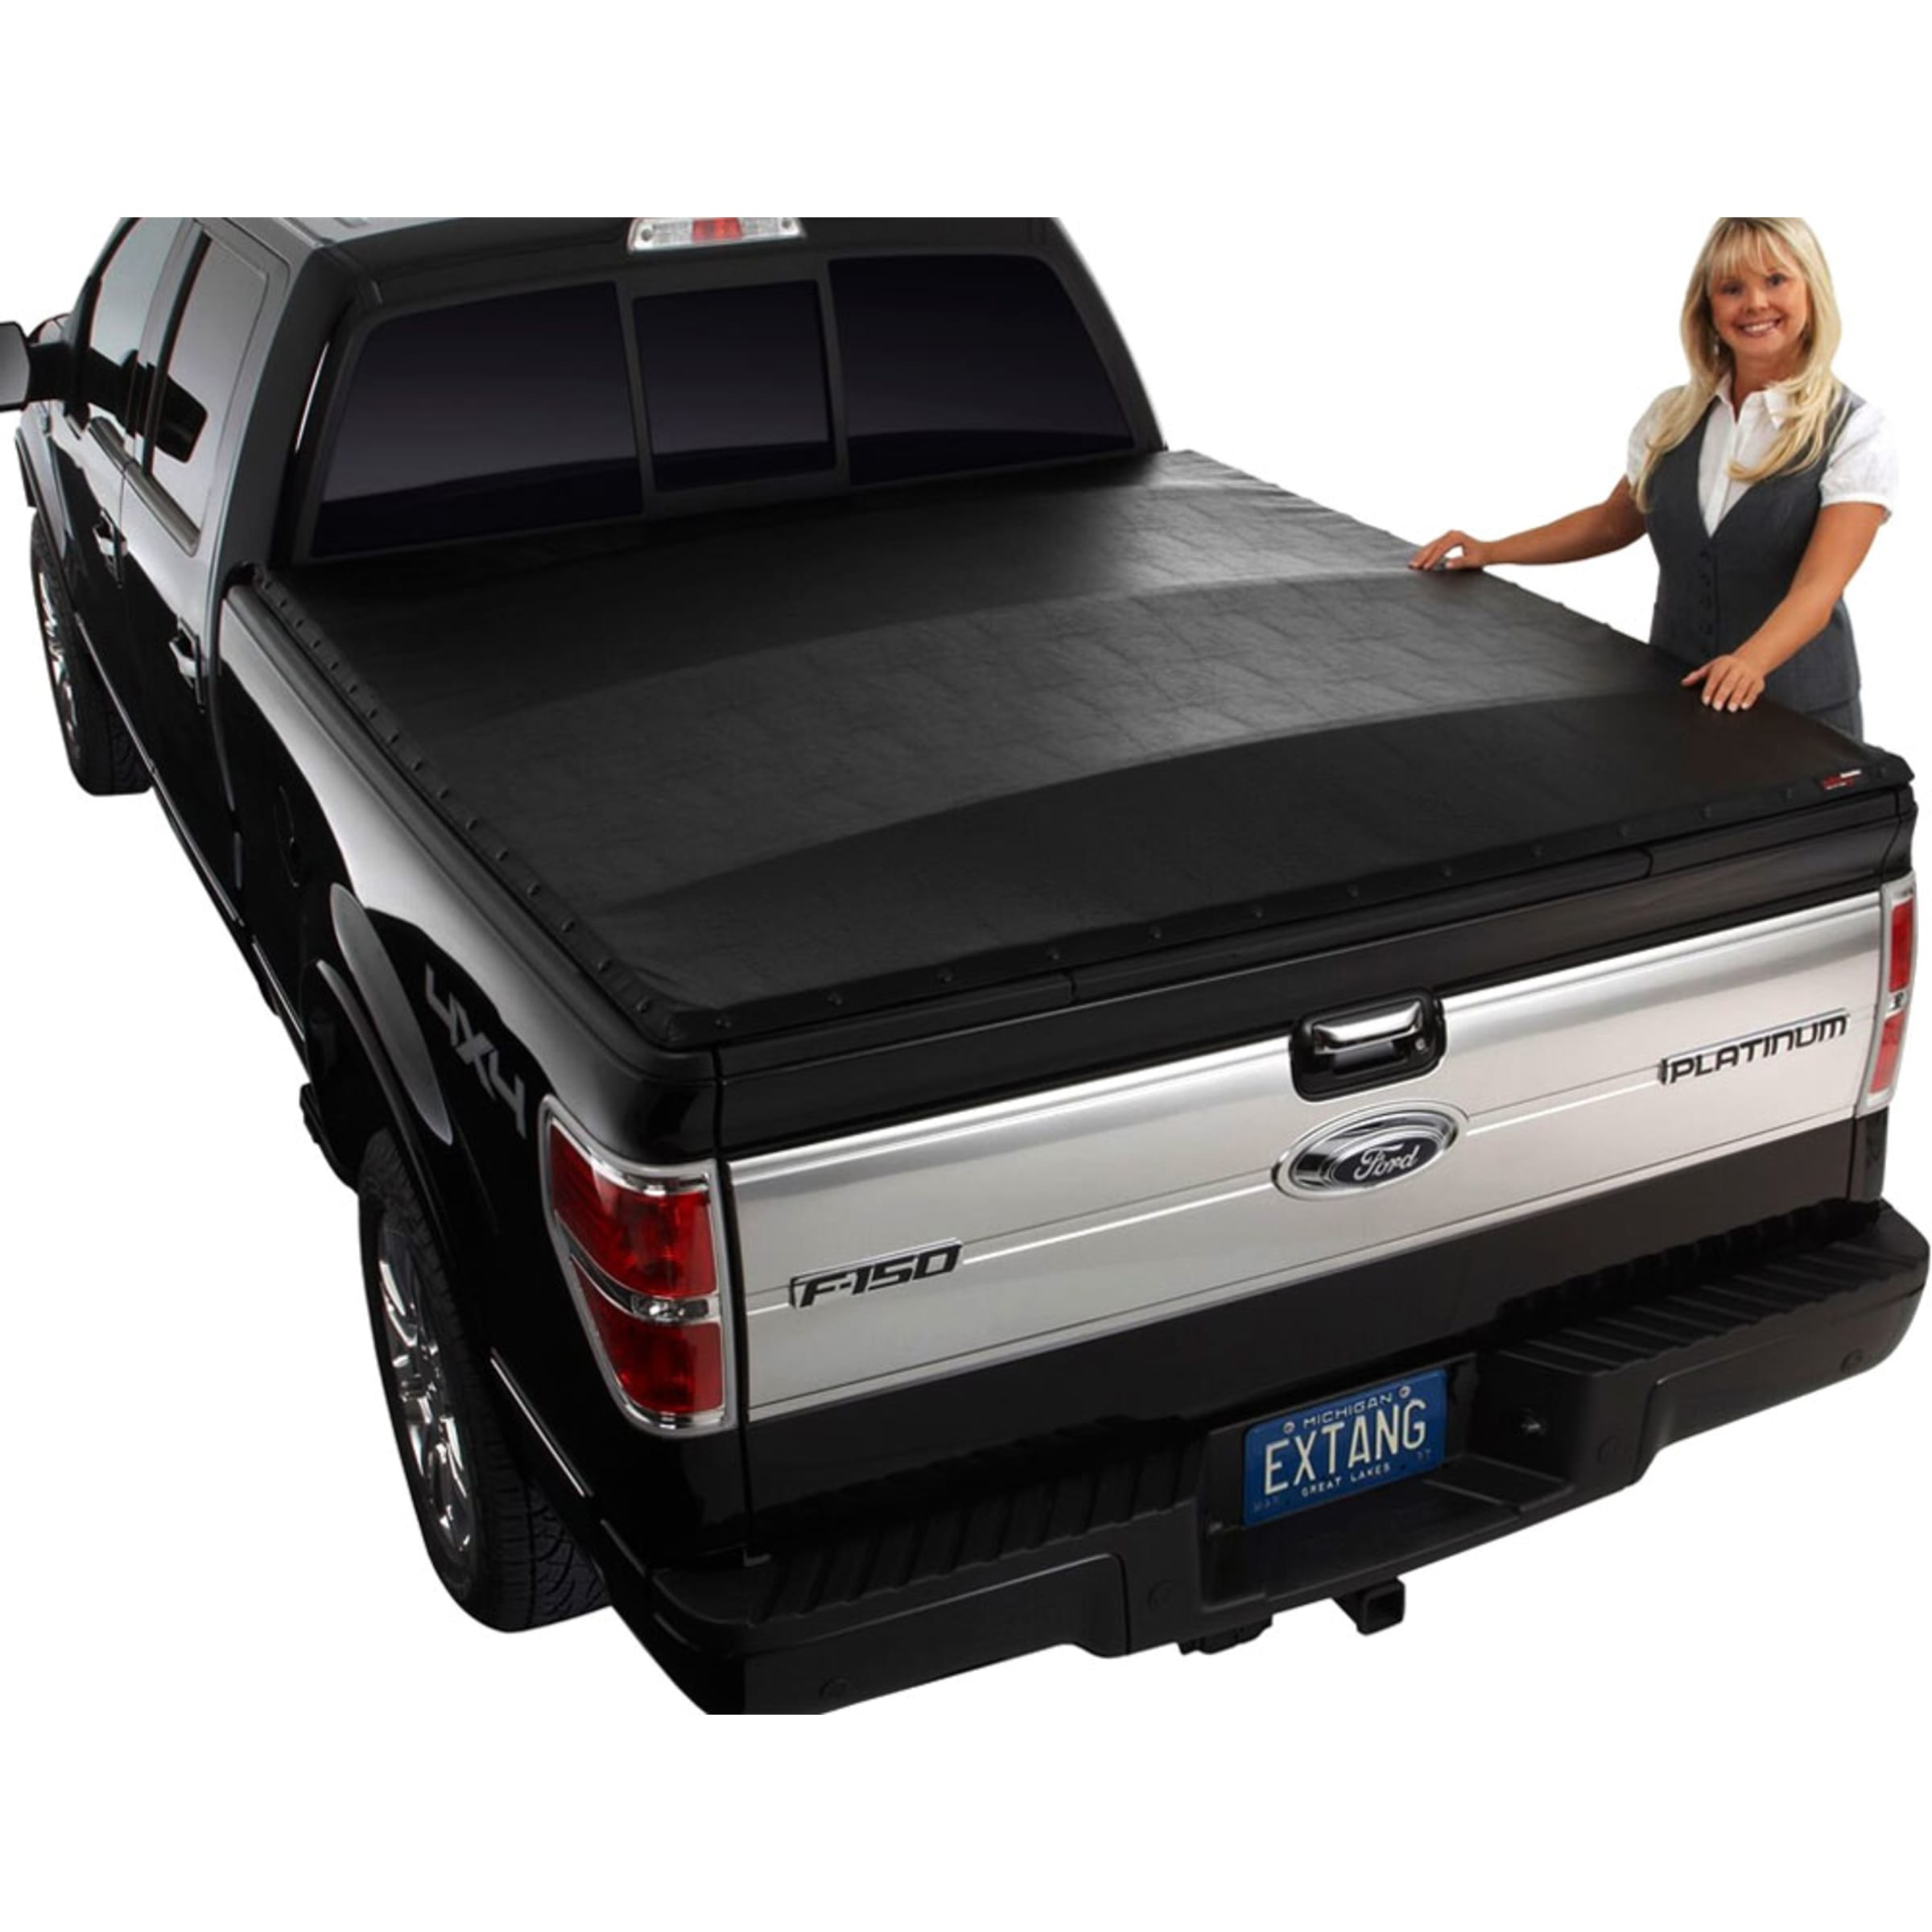 Extang Blackmax Roll Up Tonneau Cover Fits Approx 6 Ft Bed